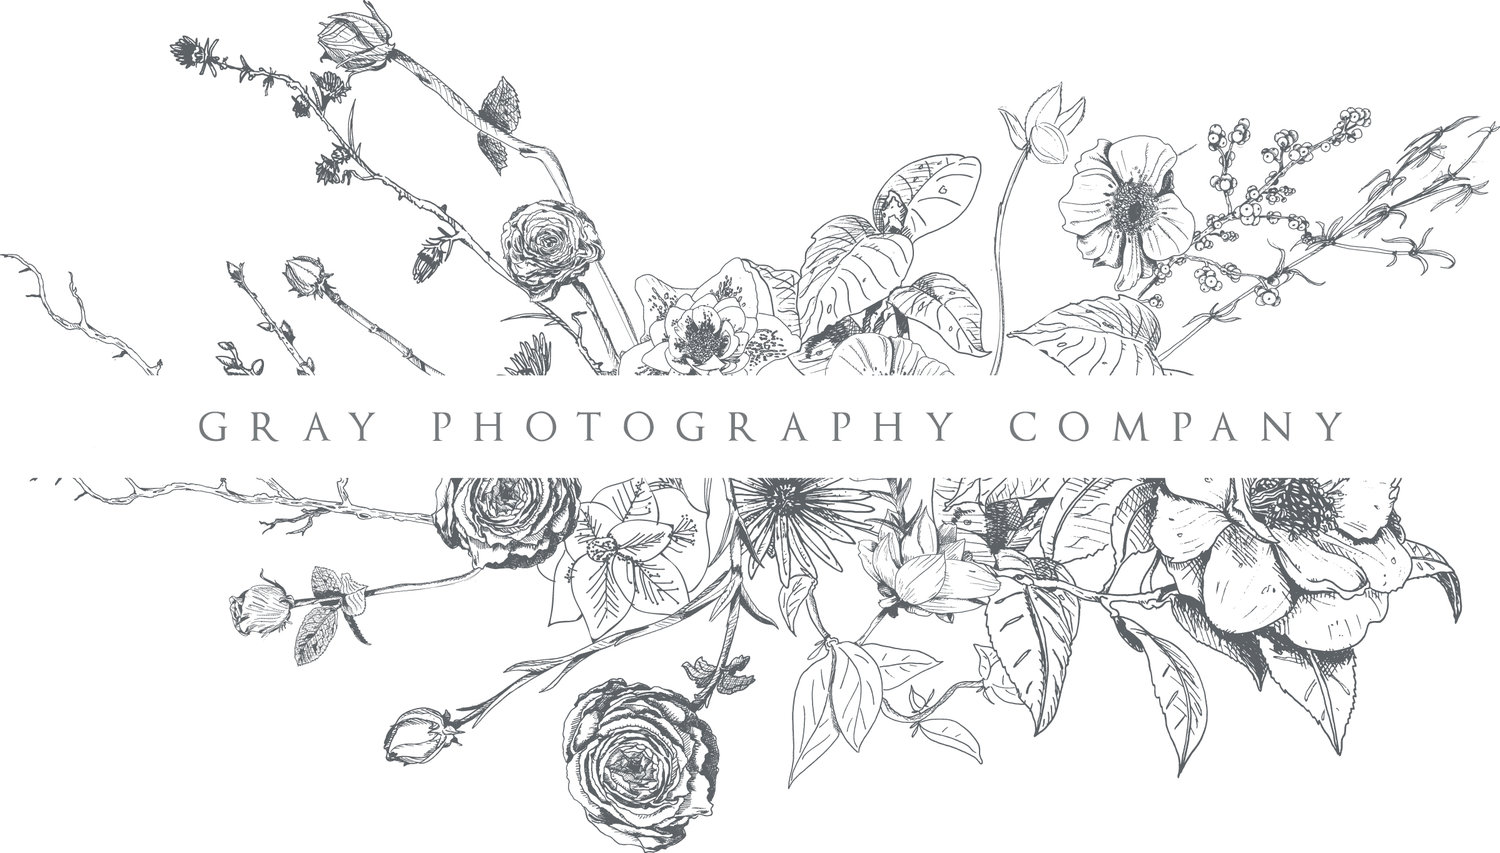 GRAY PHOTOGRAPHY COMPANY